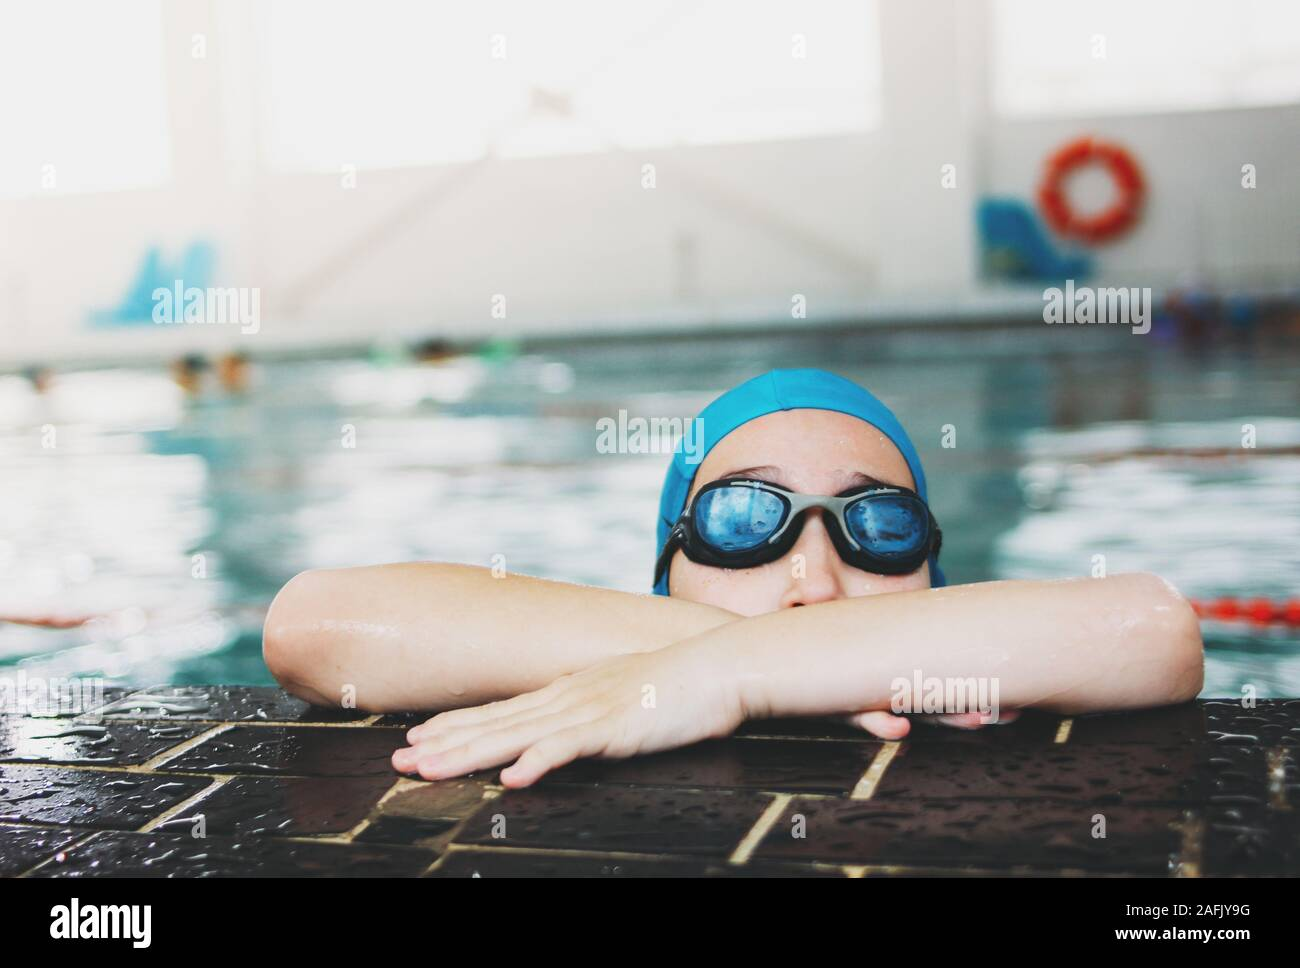 School boy swimmer in swimming blue cap and glasses on the pool, children sport Stock Photo